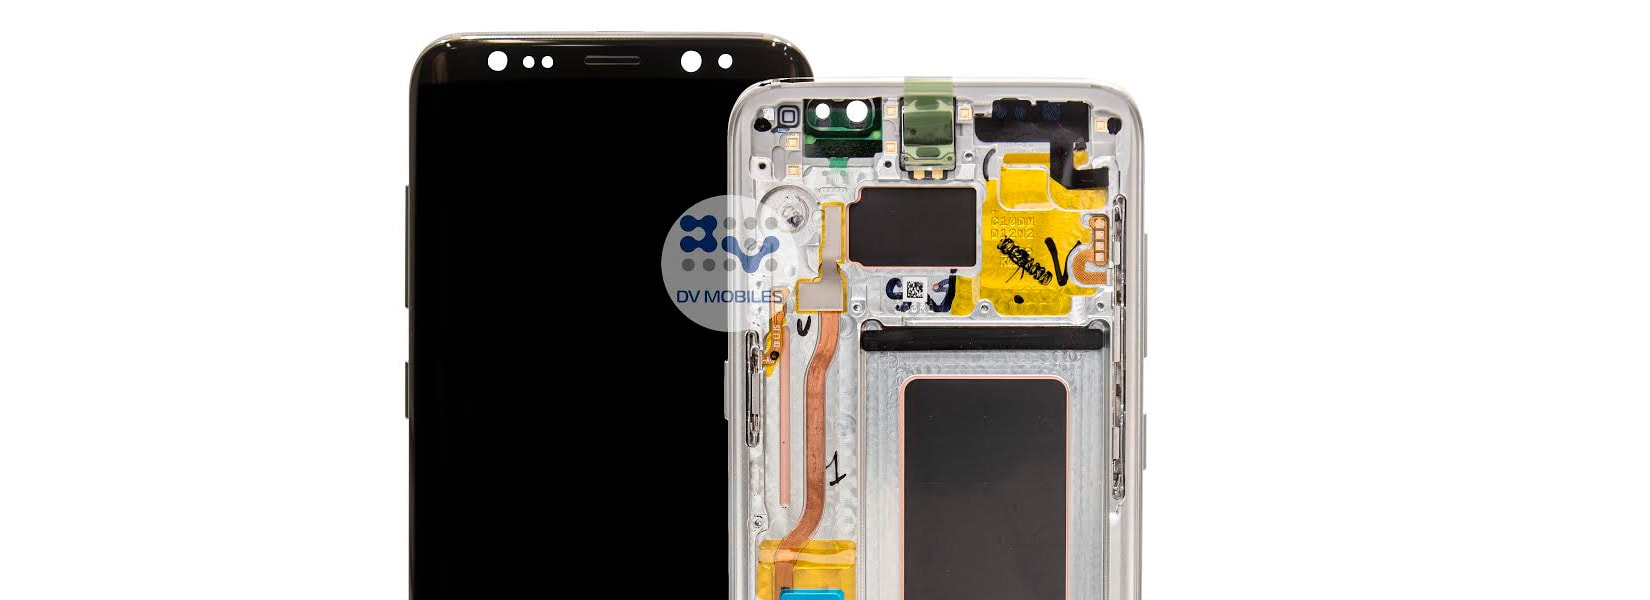 Spare parts for Samsung Galaxy phones  Prices for spare parts for